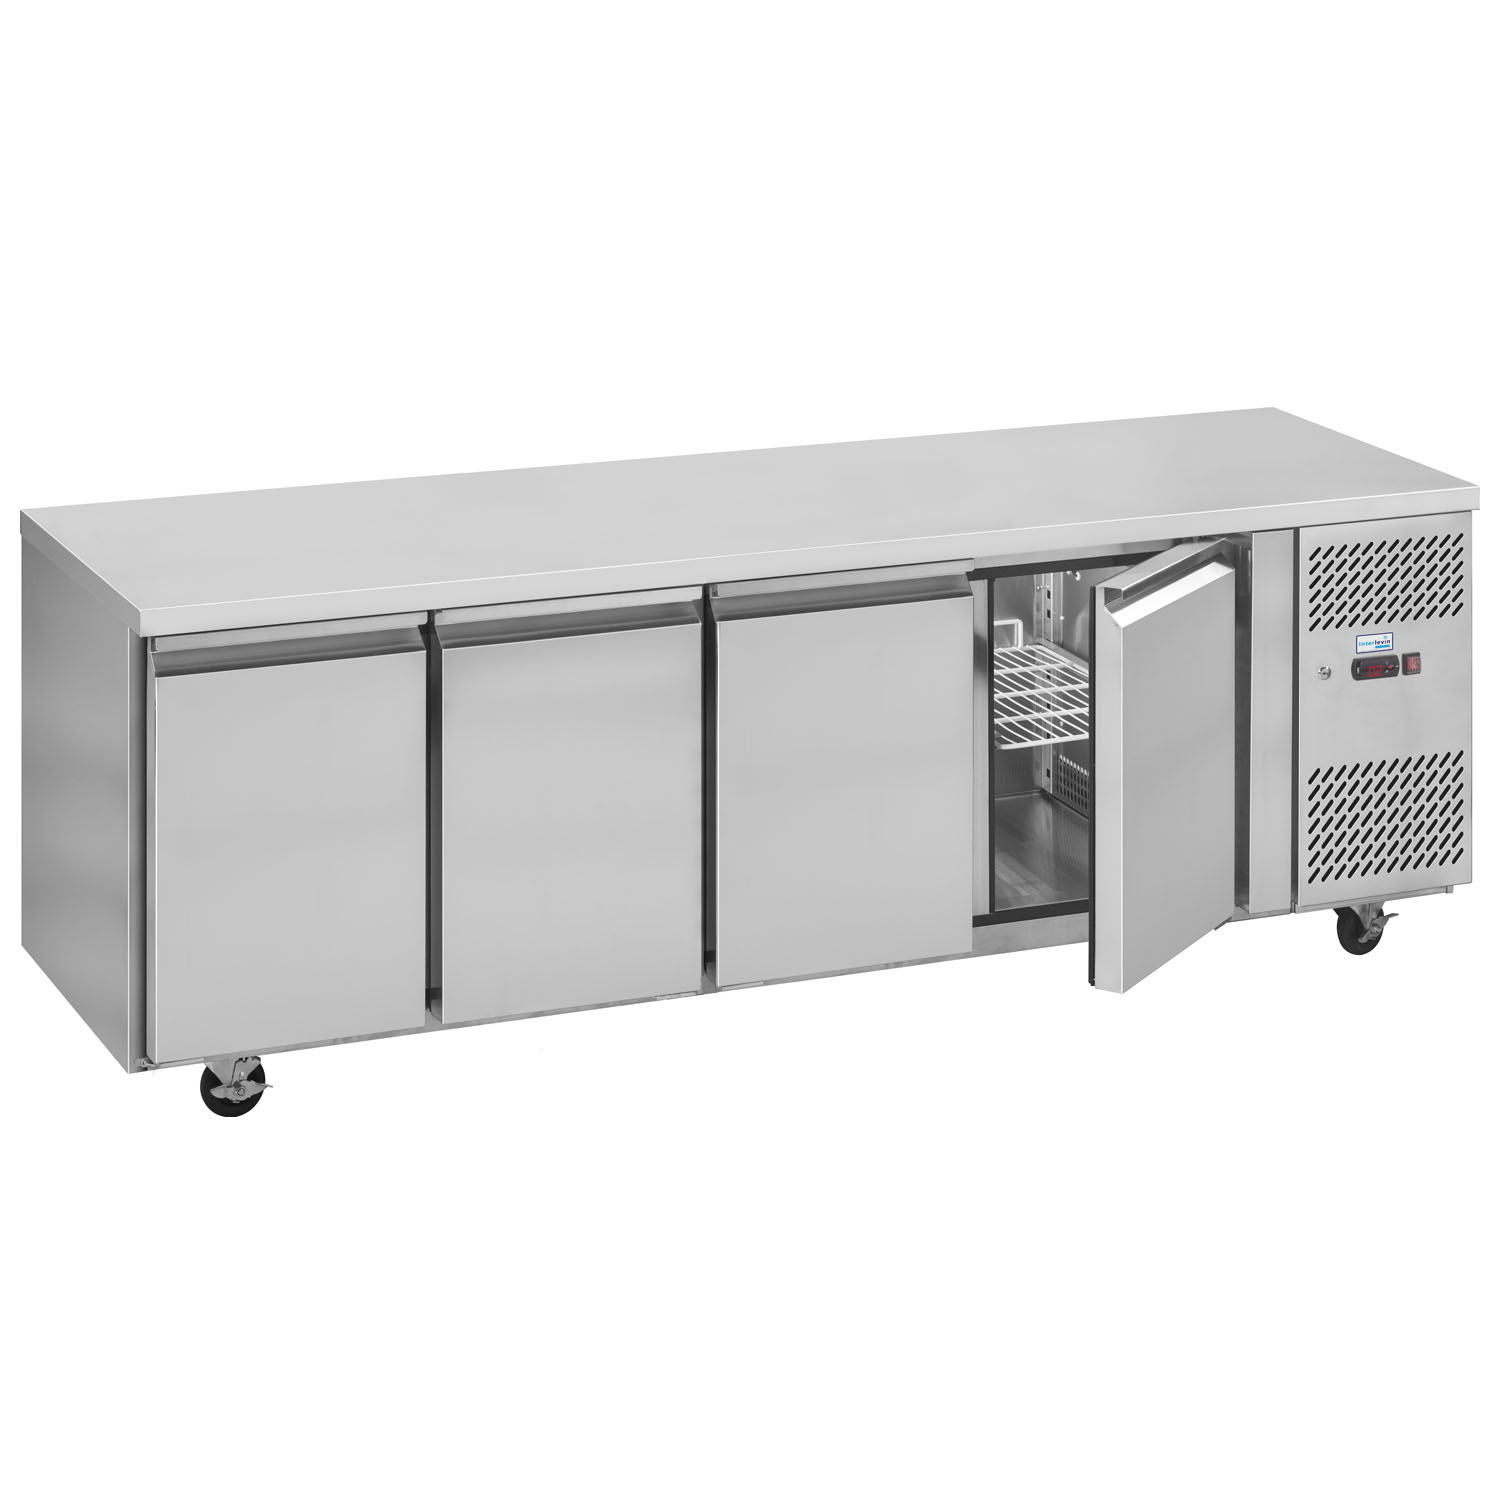 Interlevin PH40 Gastronorm Stainless Steel Counter 4-Door Chiller